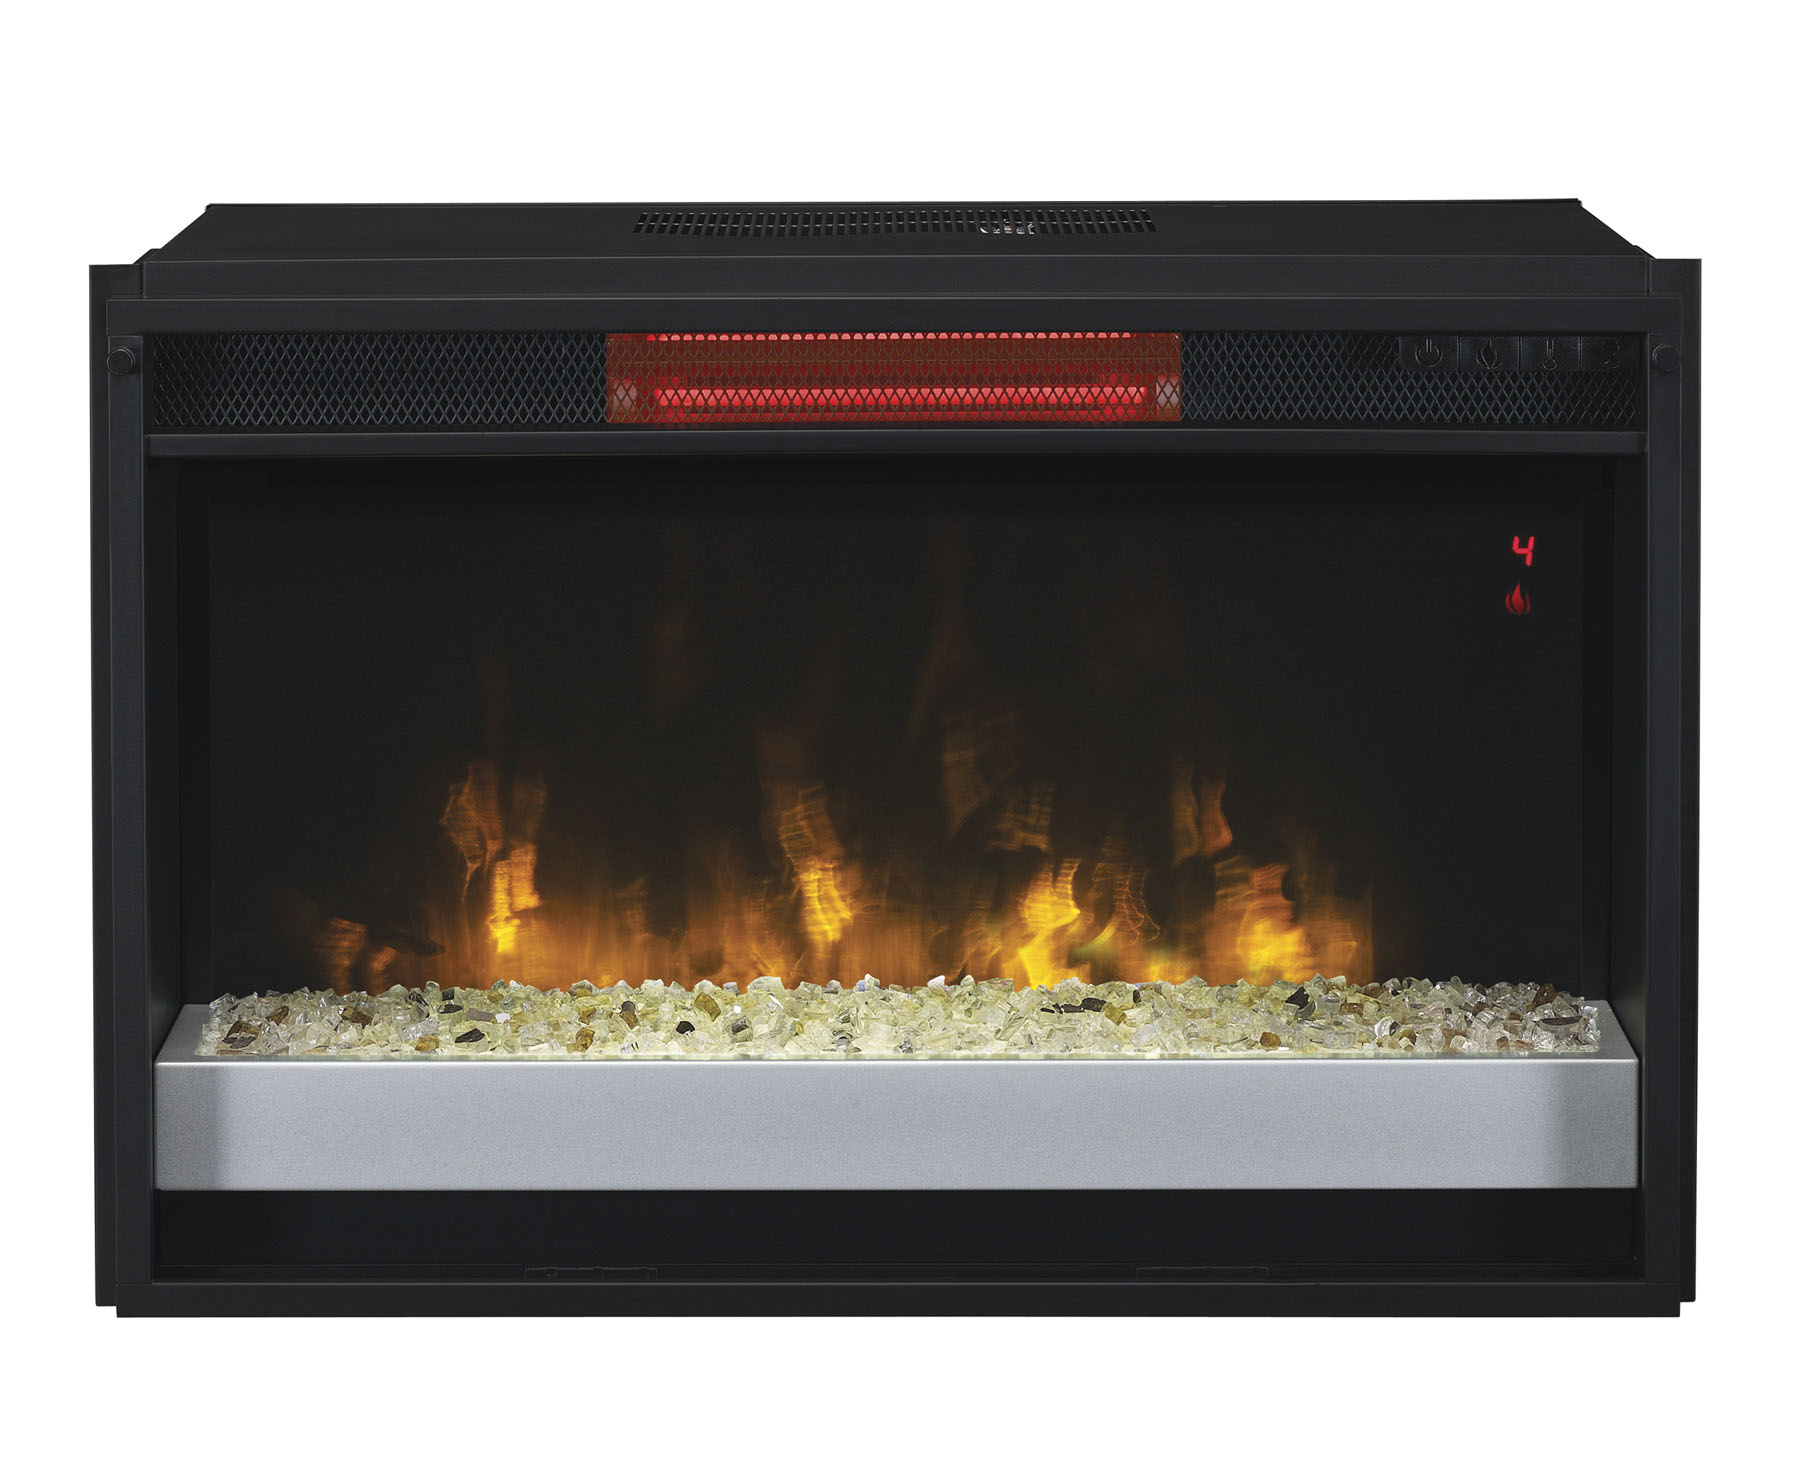 space fireplaces black friday flame heater of beautiful mantle walmart electric fireplace decor with